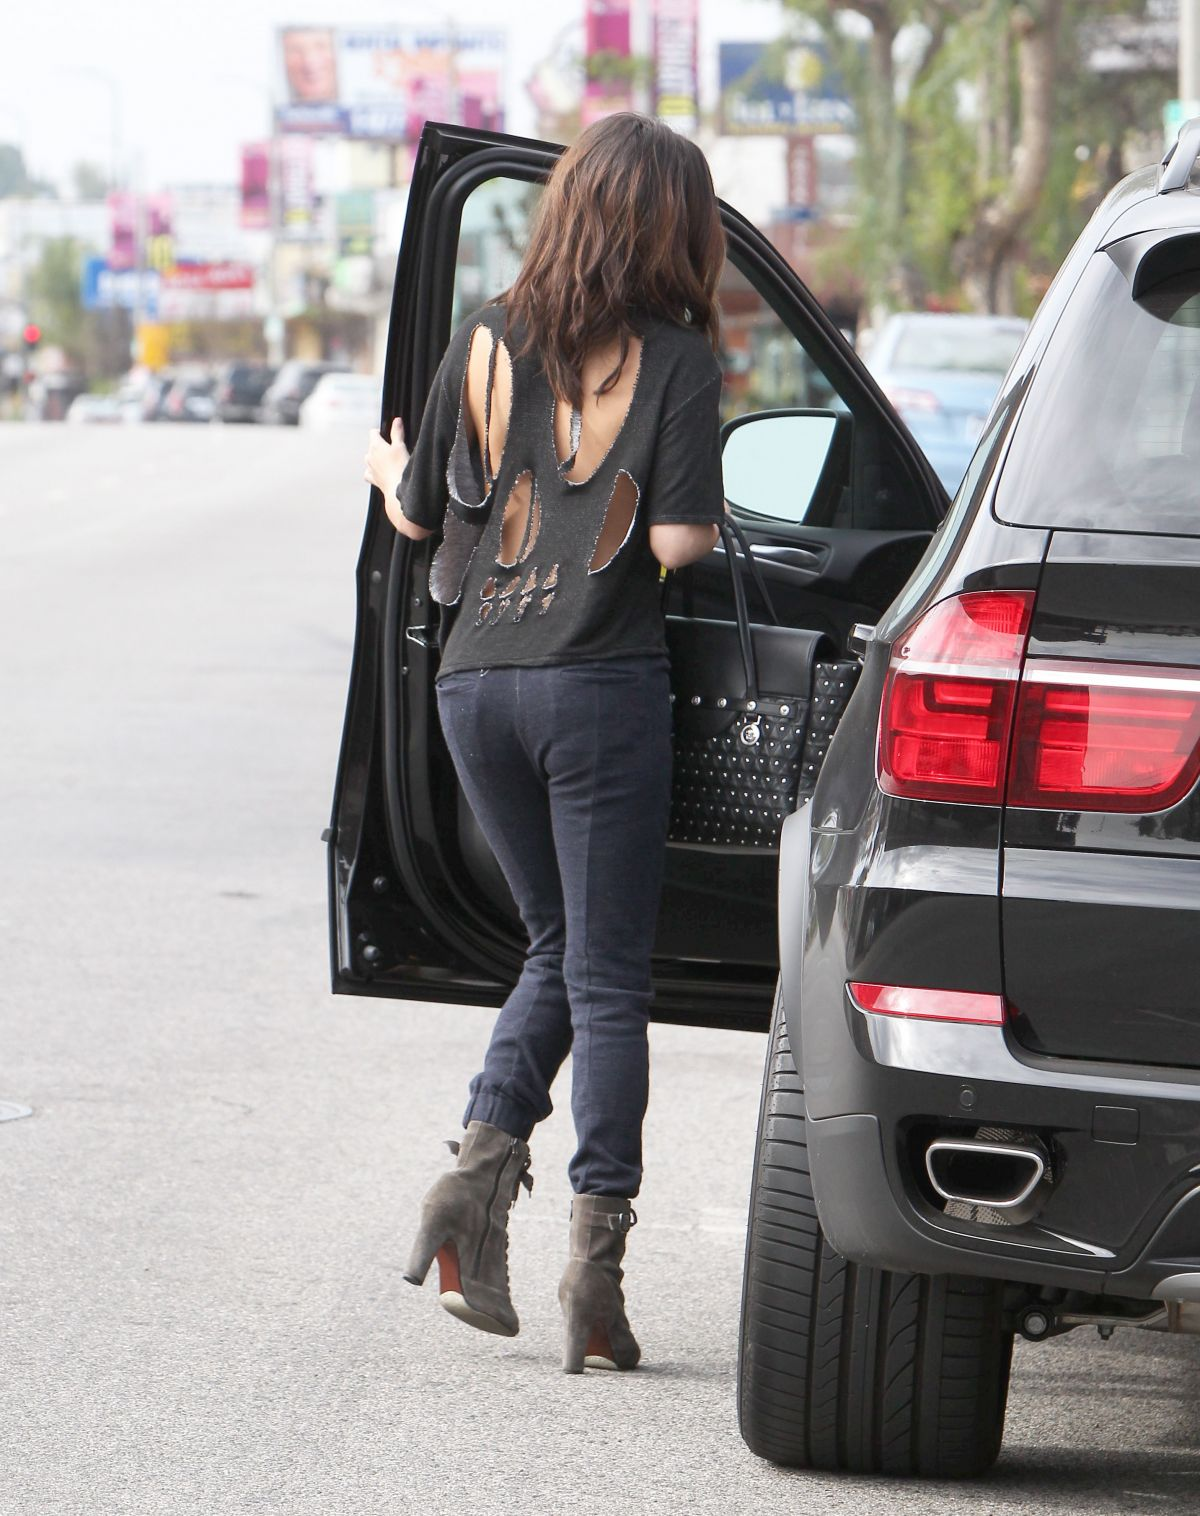 SELENA GOMEZ in Cutout Shirt Out in Los AngelesSelena Gomez No Shirt